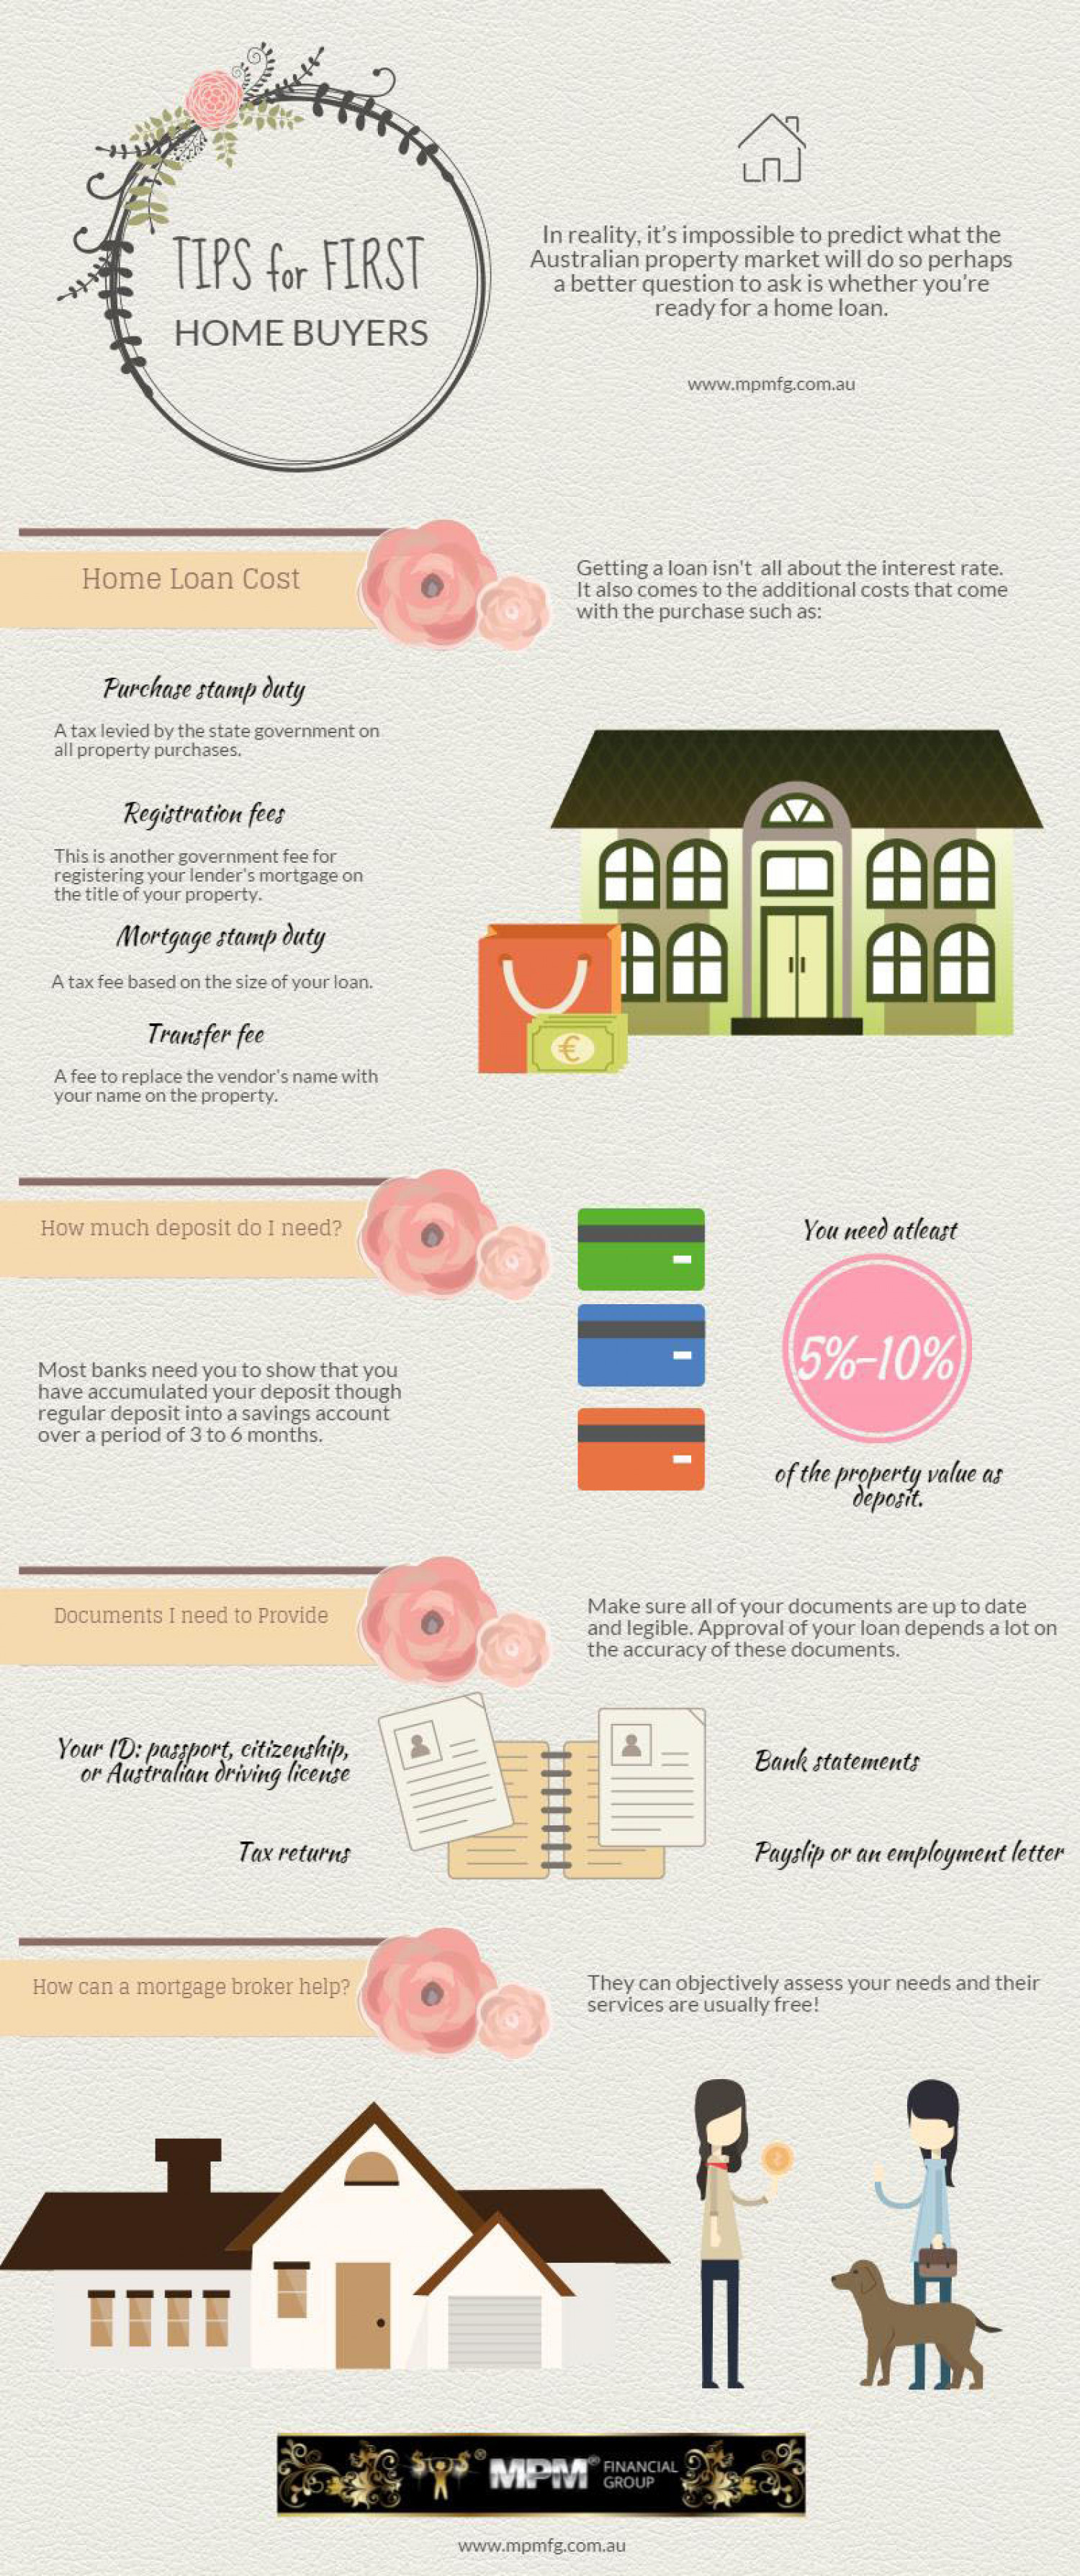 Tips for First Home Buyers Infographic